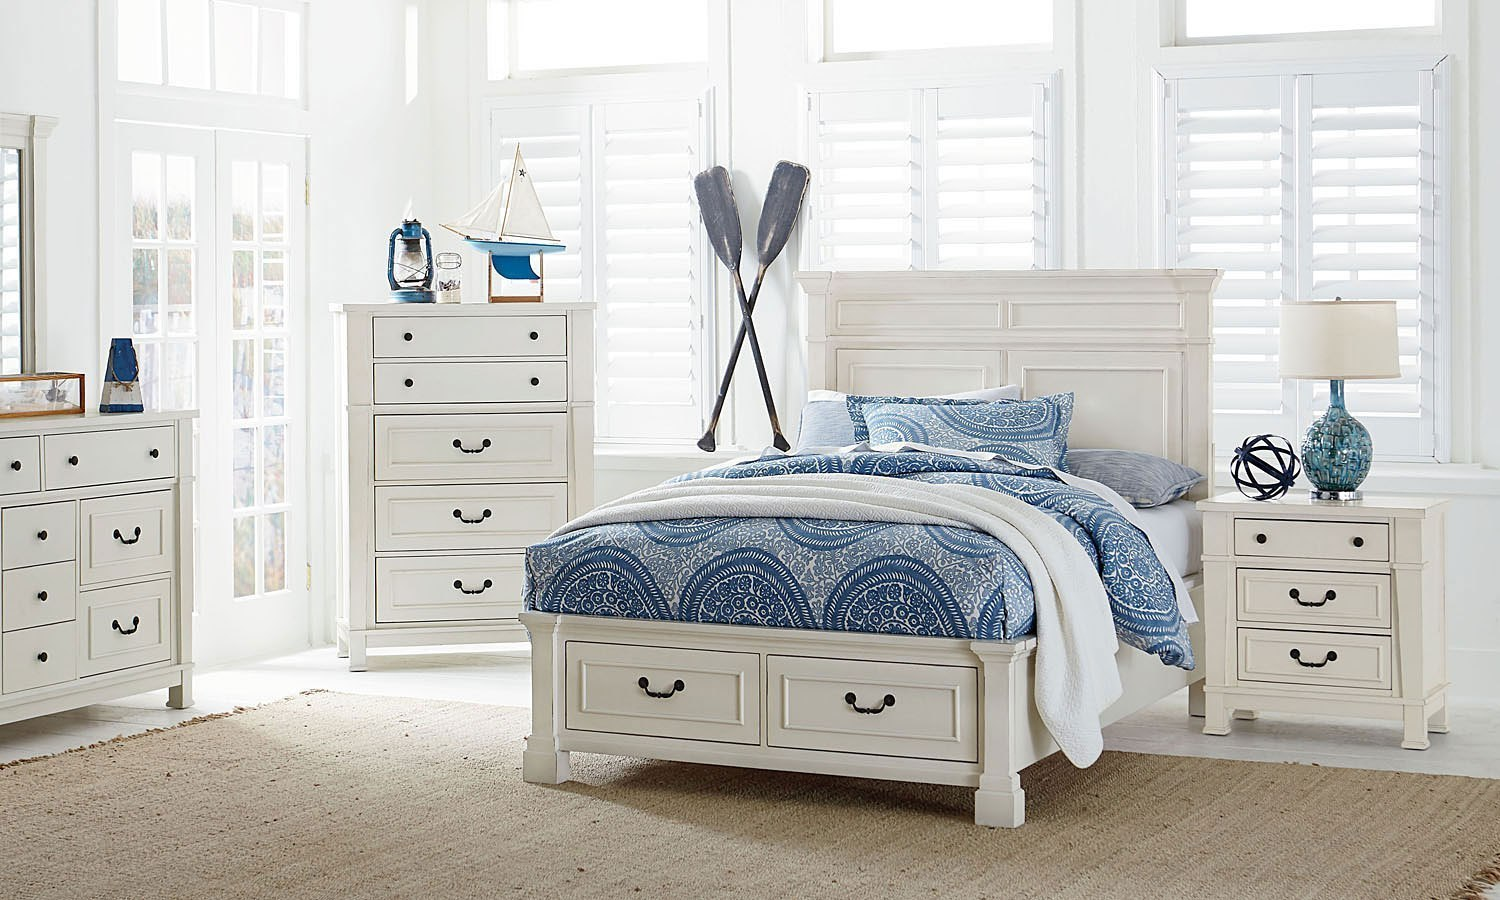 Chesapeake bay youth storage bedroom set by standard - Youth bedroom furniture with storage ...